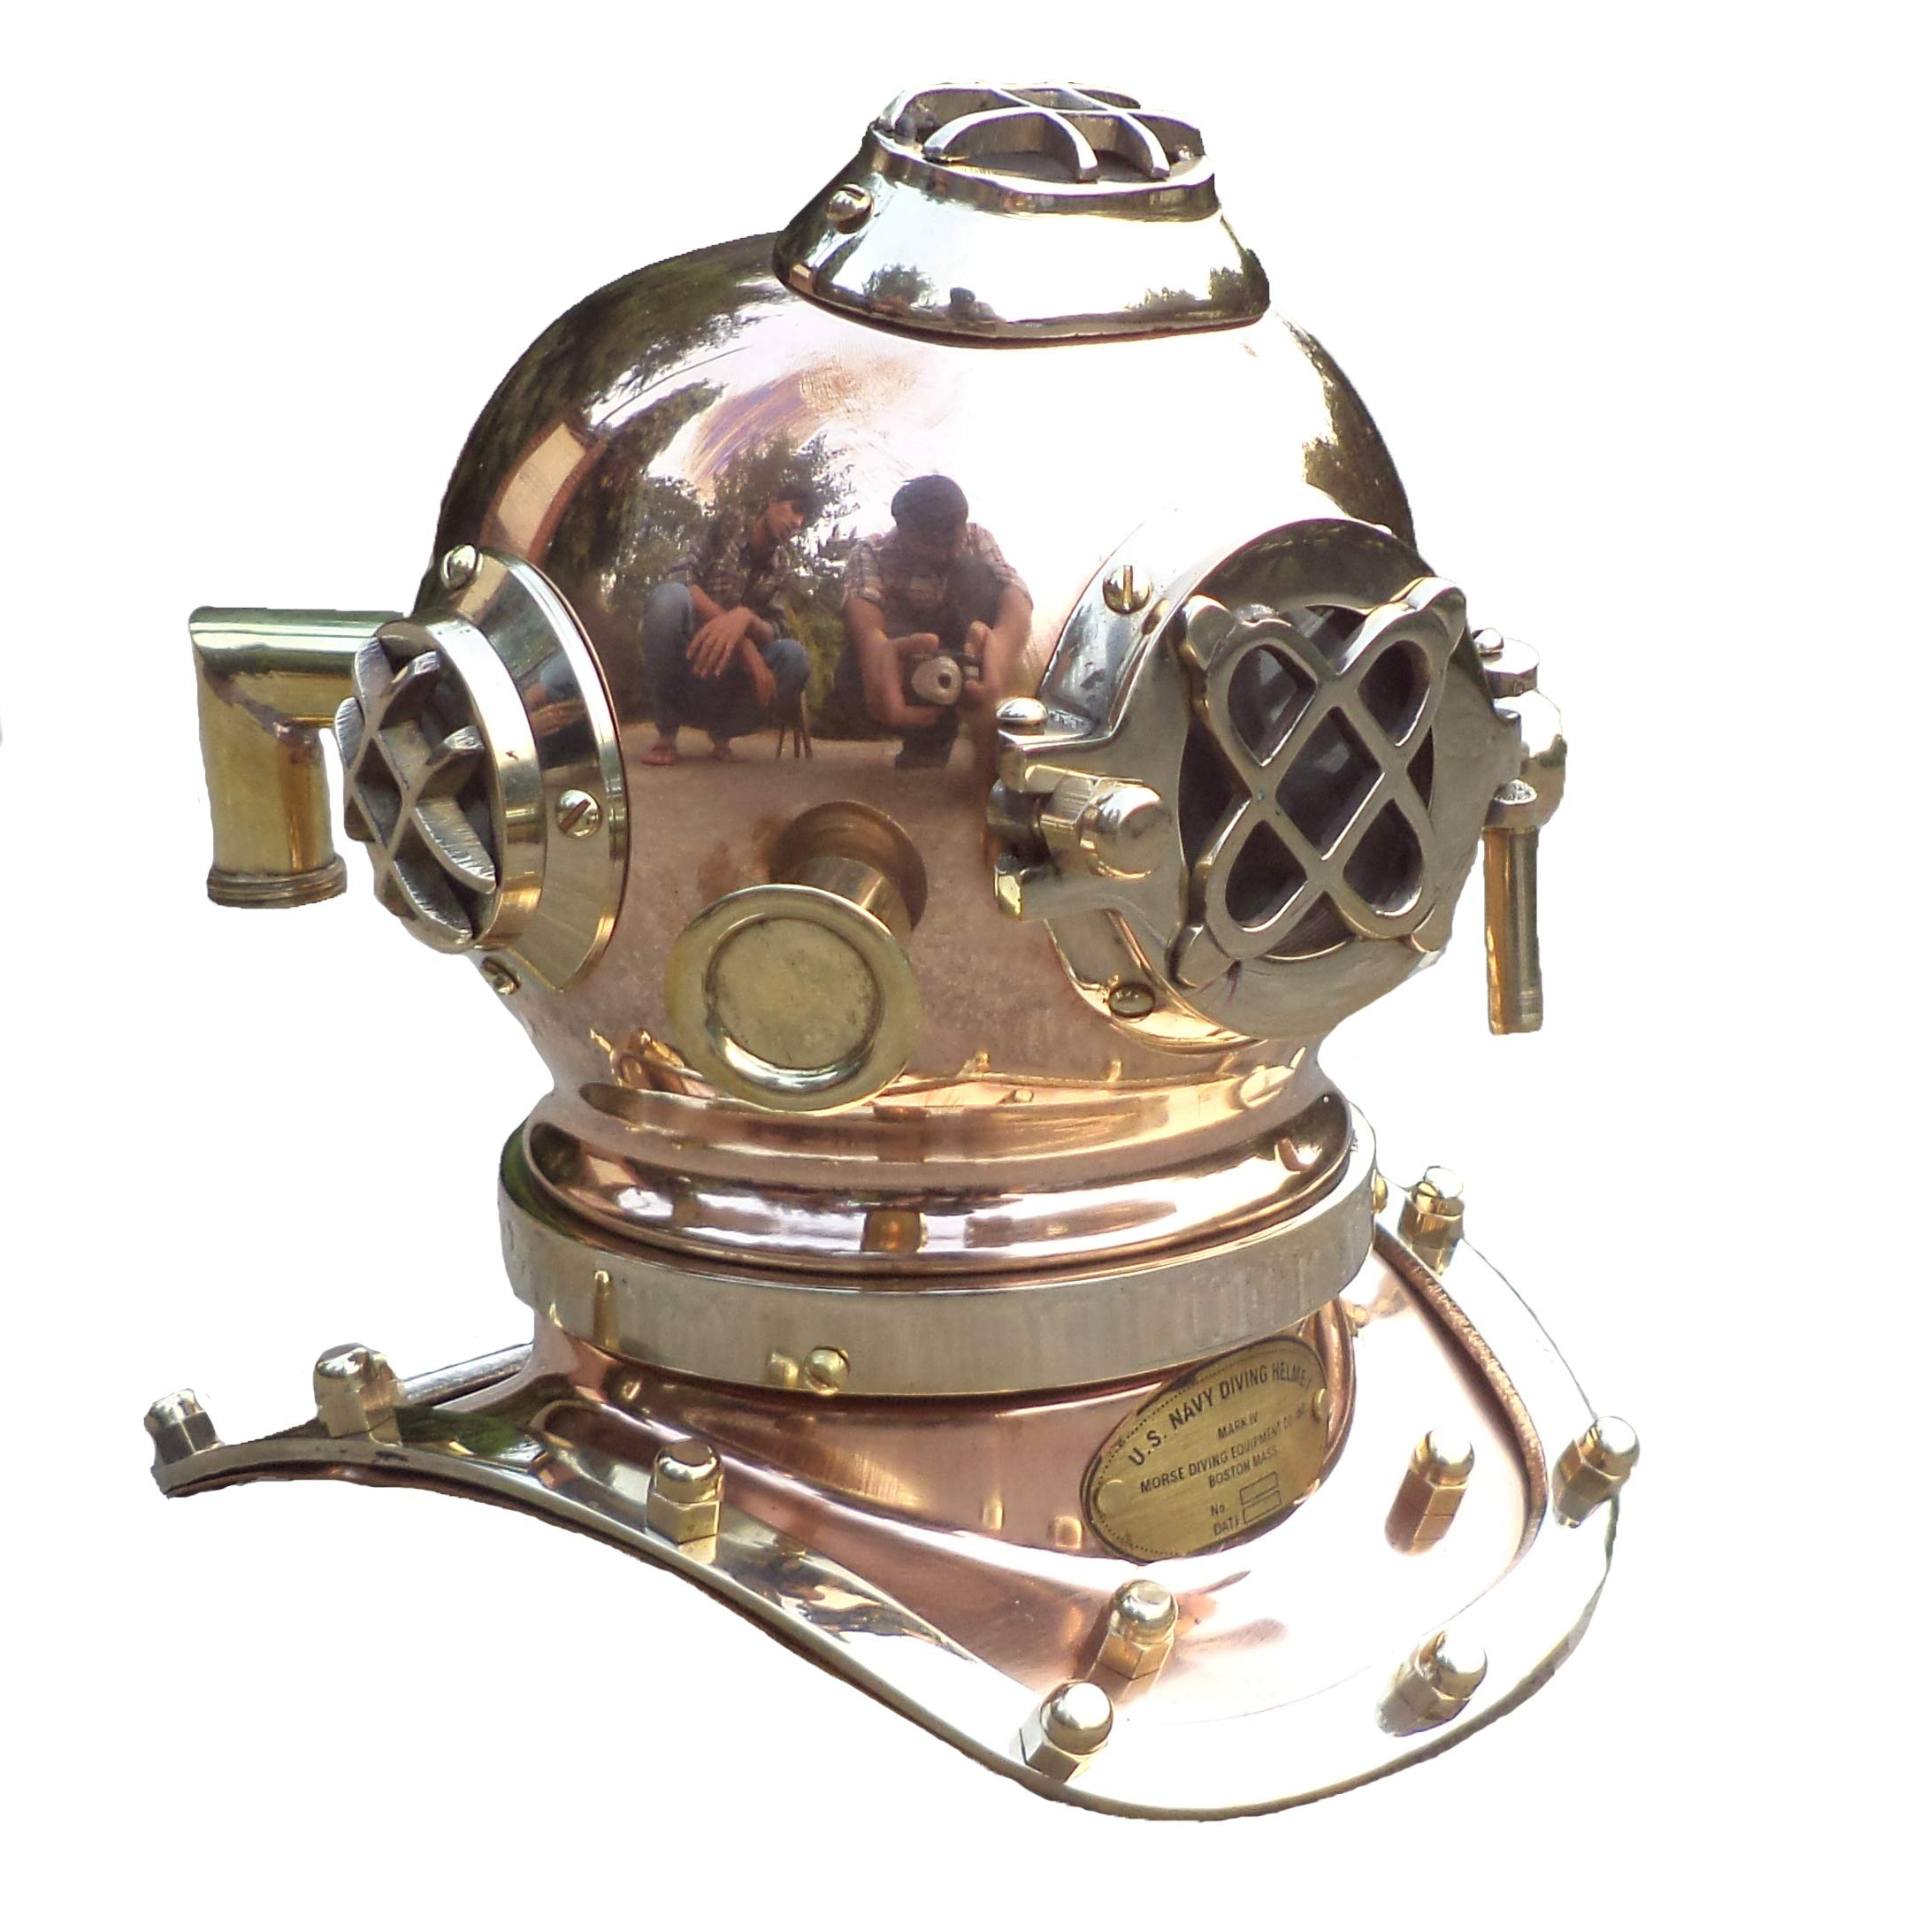 Collectibles Buy Antique Marine Mini Diving Helmet Replica Mark Us Navy Nautical Copper Finish (Copper) by Collectibles Buy